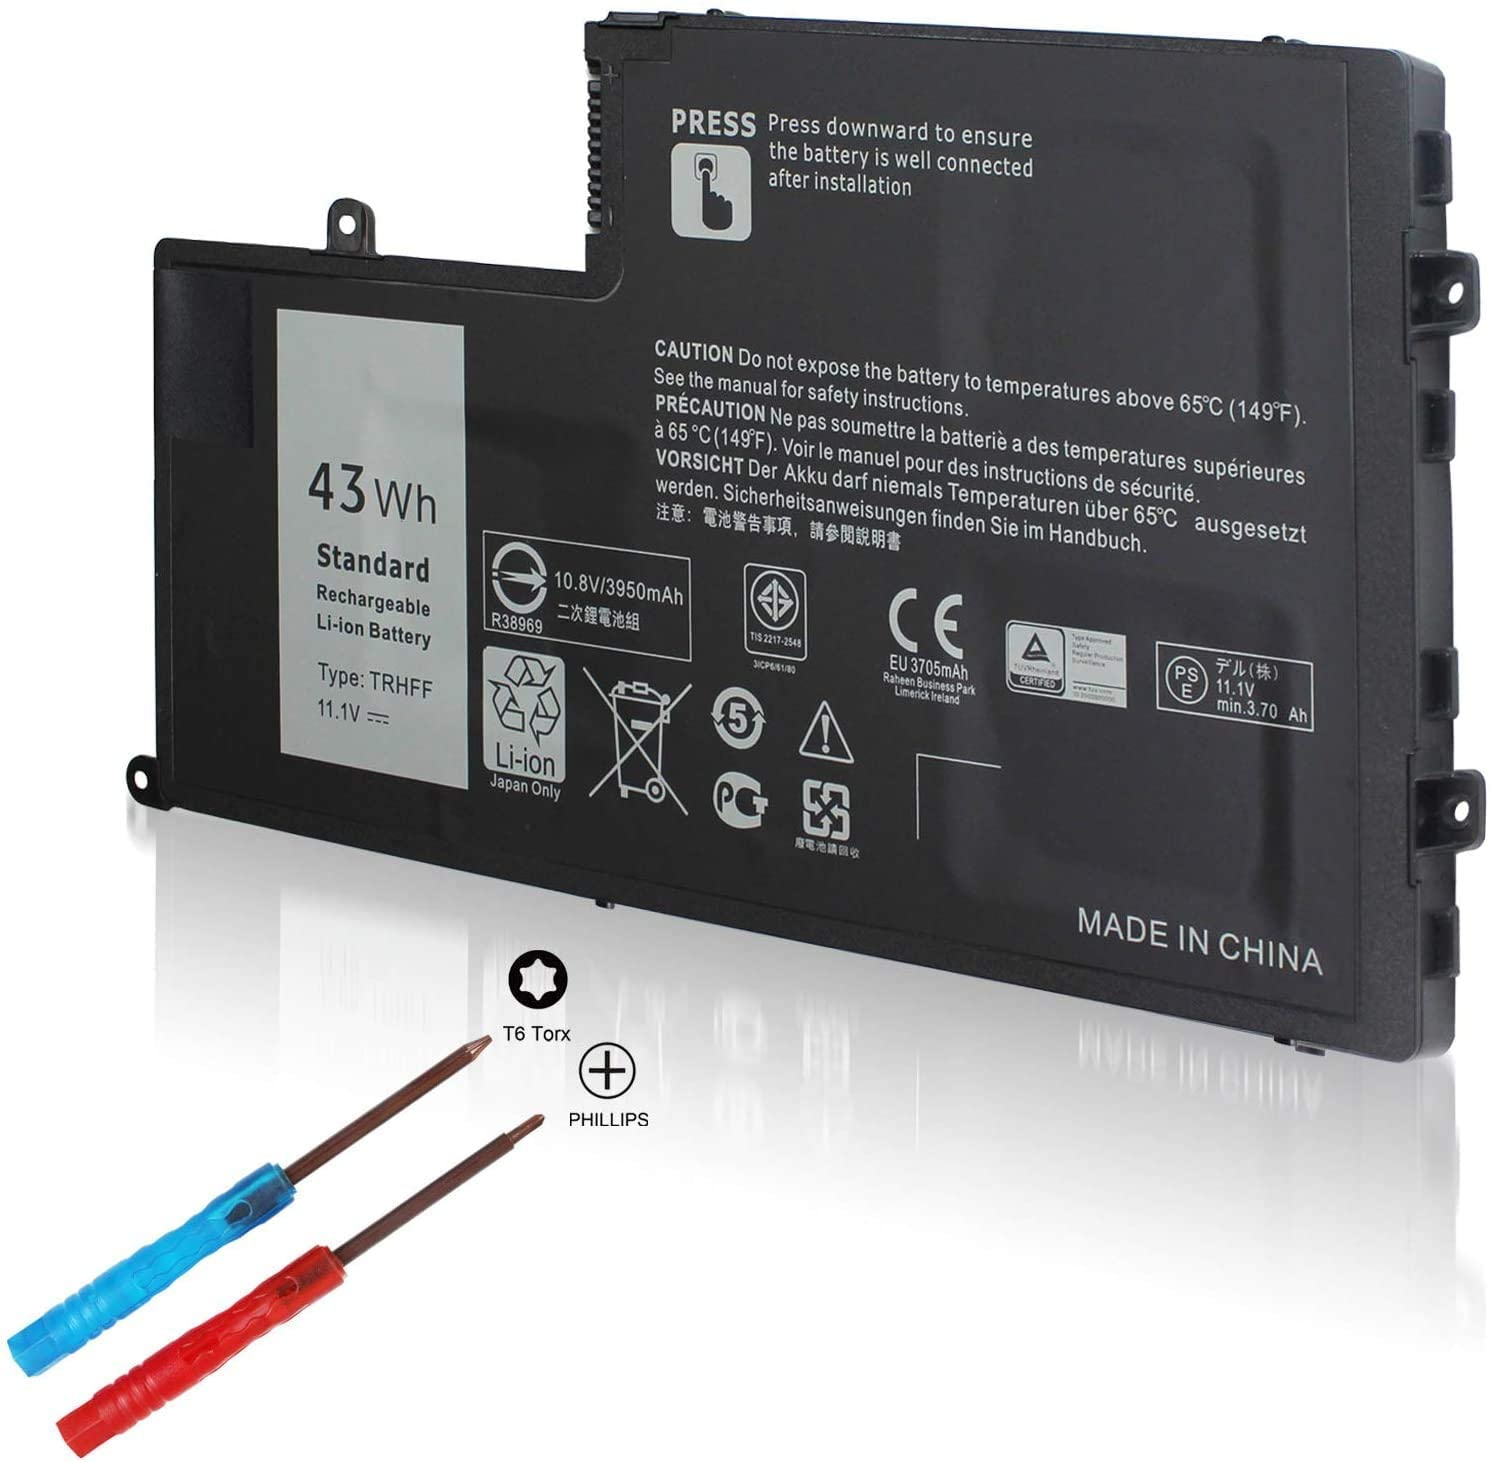 TRHFF 01V2F 1V2F6 11.1V 43Wh Battery Compatible with Dell Inspiron 5547 N5447 15-5548 14 15 5000 5445 5447 5448, Latitude 14 3450 15 3550, fits 1WWHW 0PD19 DFVYN 0DFVYN P39F 58DP4 VVMKC 0VVMKC 5MD4V